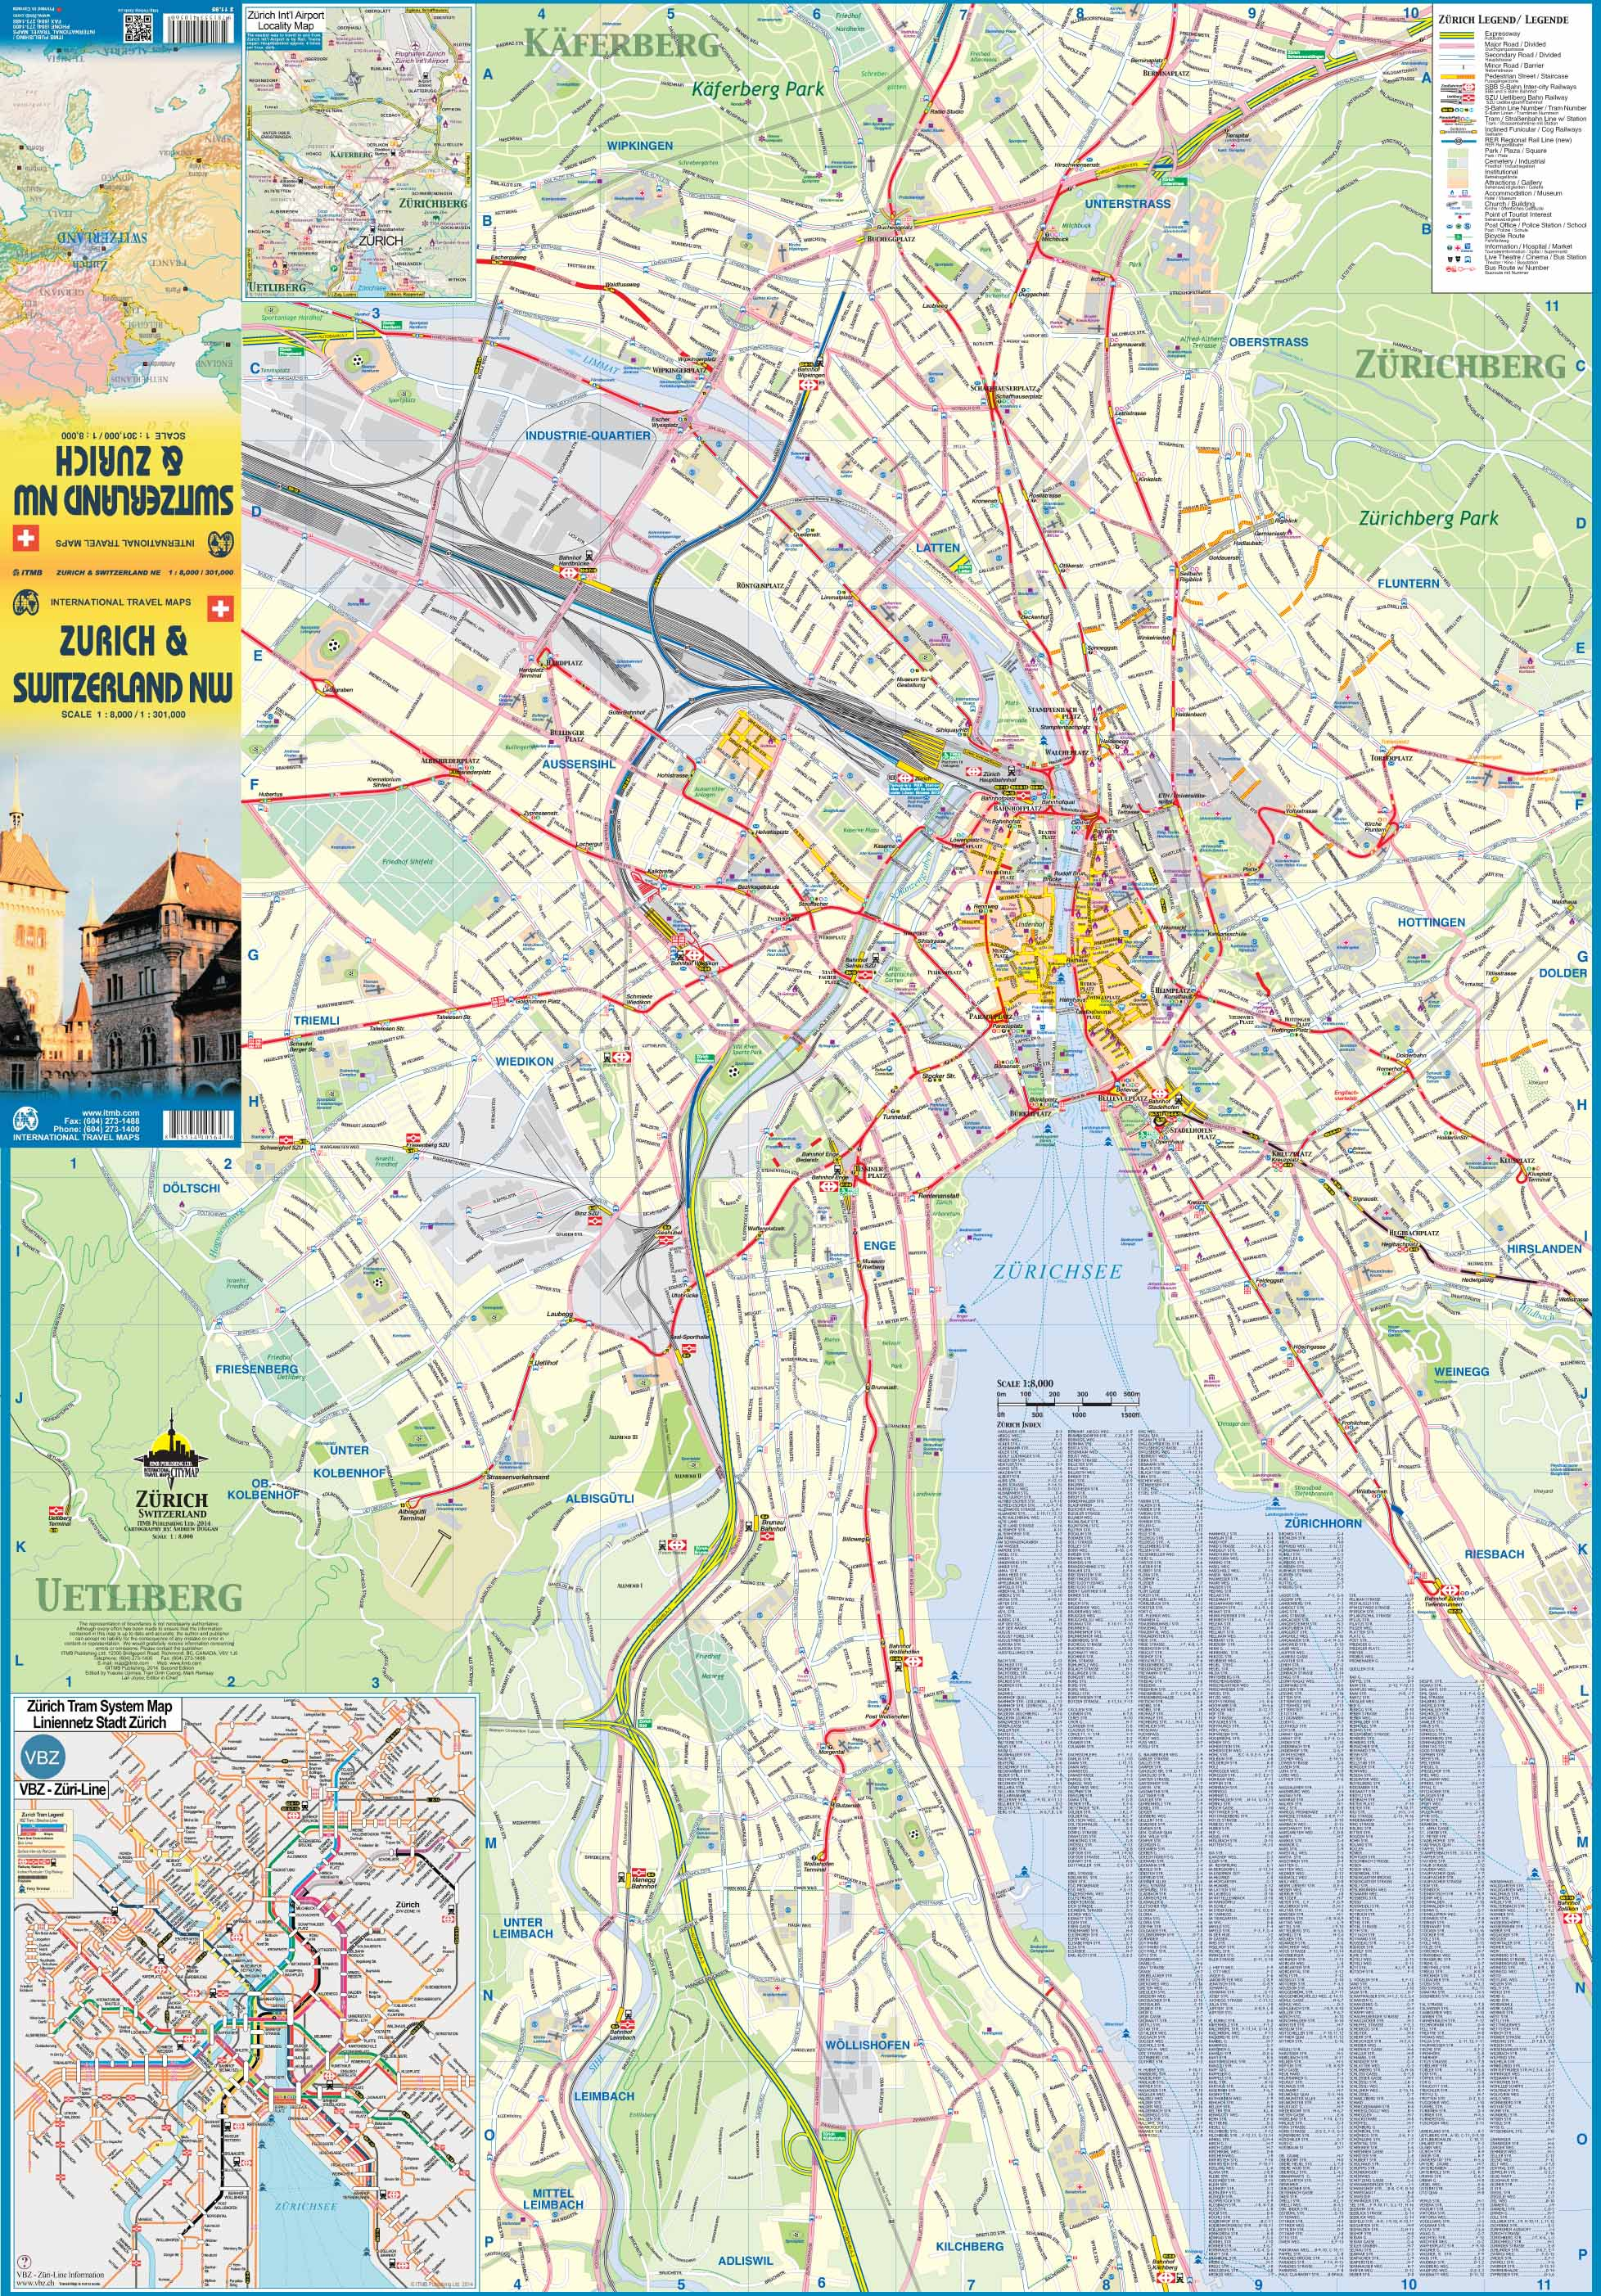 Maps for travel City Maps Road Maps Guides Globes Topographic – Zurich Tourist Map